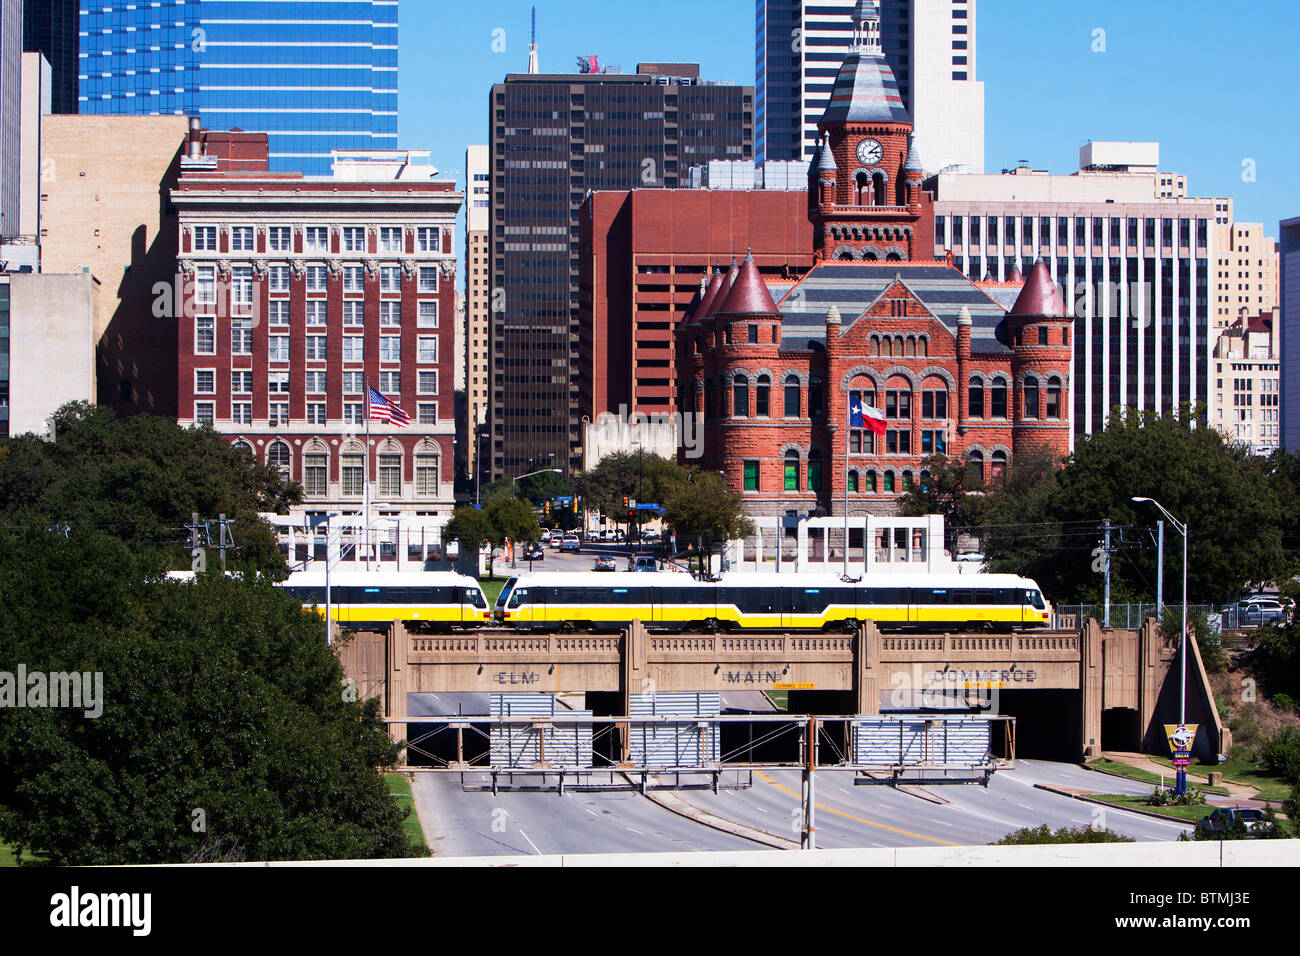 A Dallas Area Rapid Transit (DART) Light Rail train cruises above traffic in downtown Dallas, Texas. - Stock Image